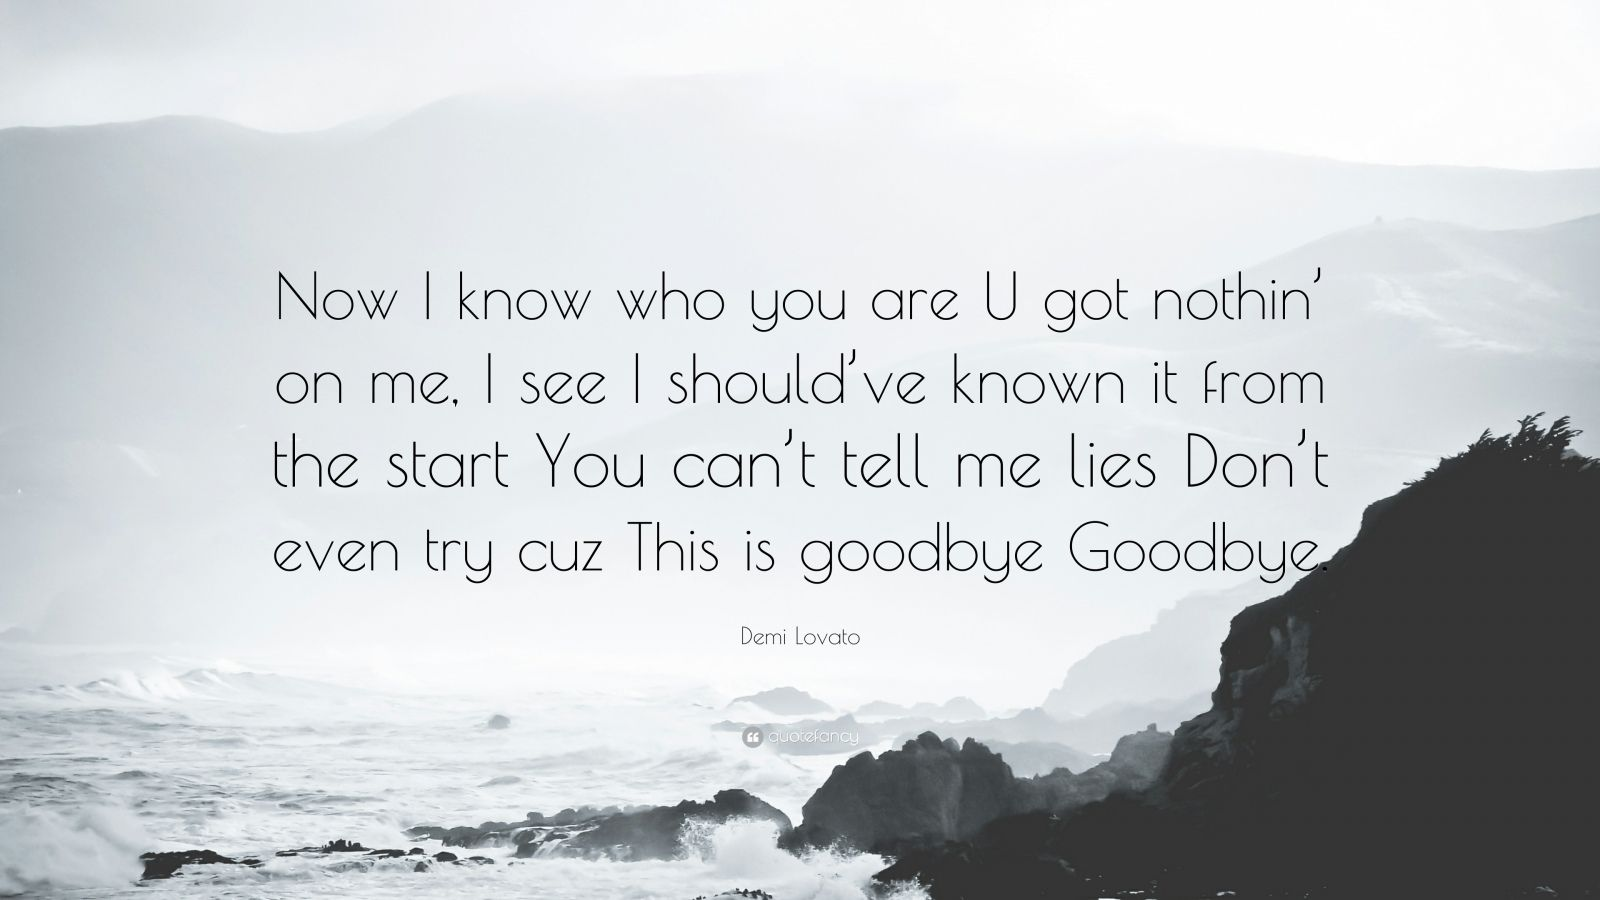 "Demi Lovato Quote: ""Now I know who you are U got nothin' on me, I see I should've known it from the start You can't tell me lies Don't even try cuz This is goodbye Goodbye."""